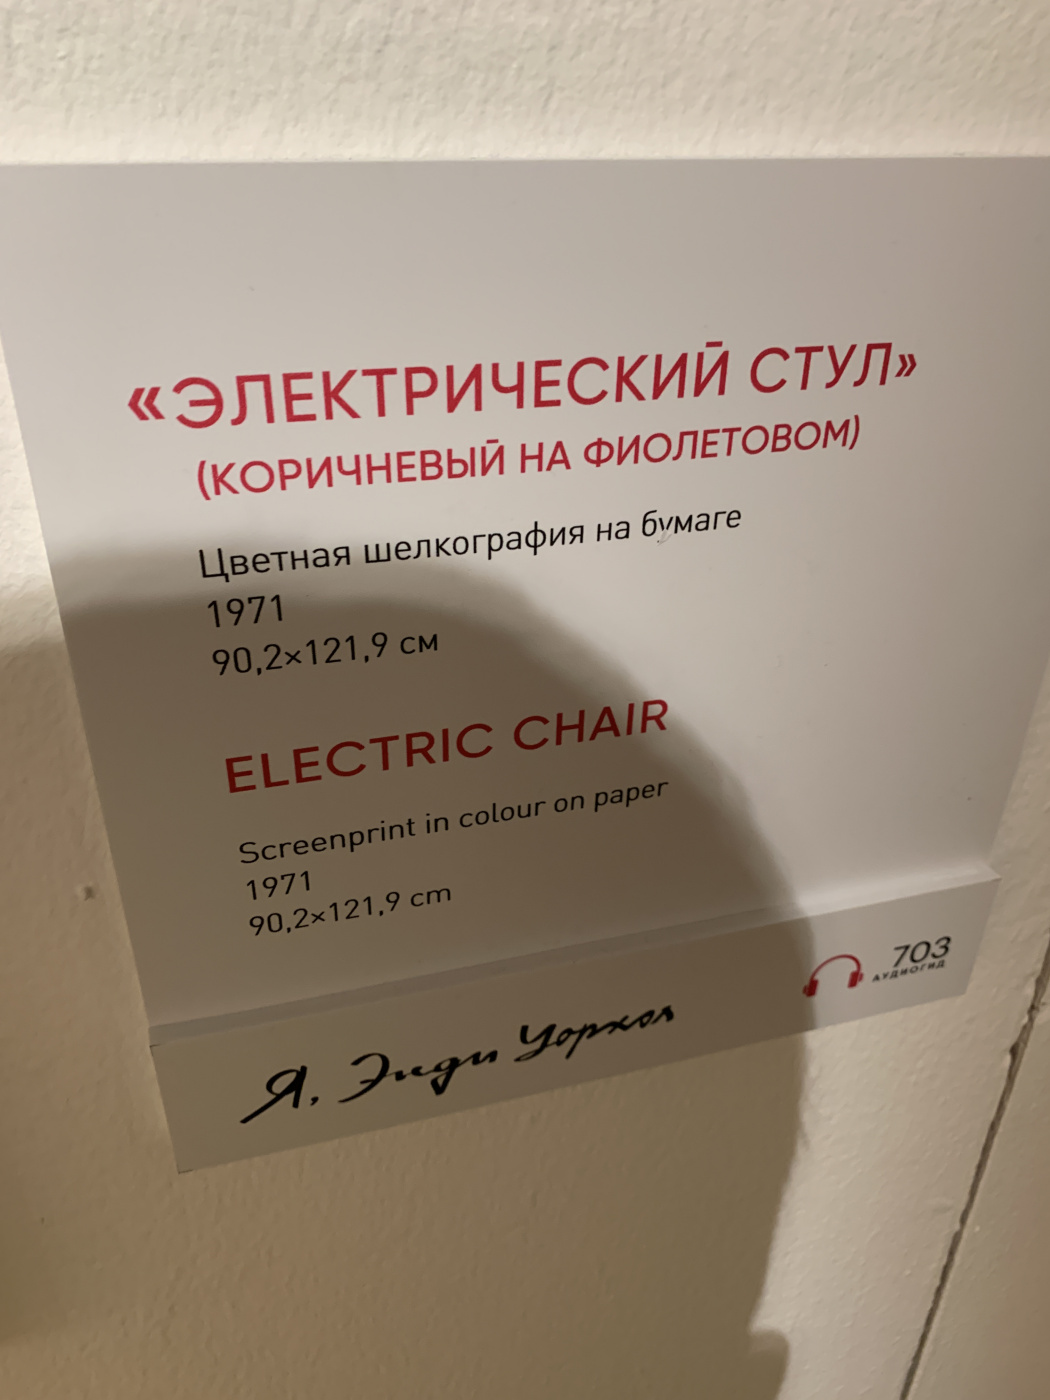 Electric chair